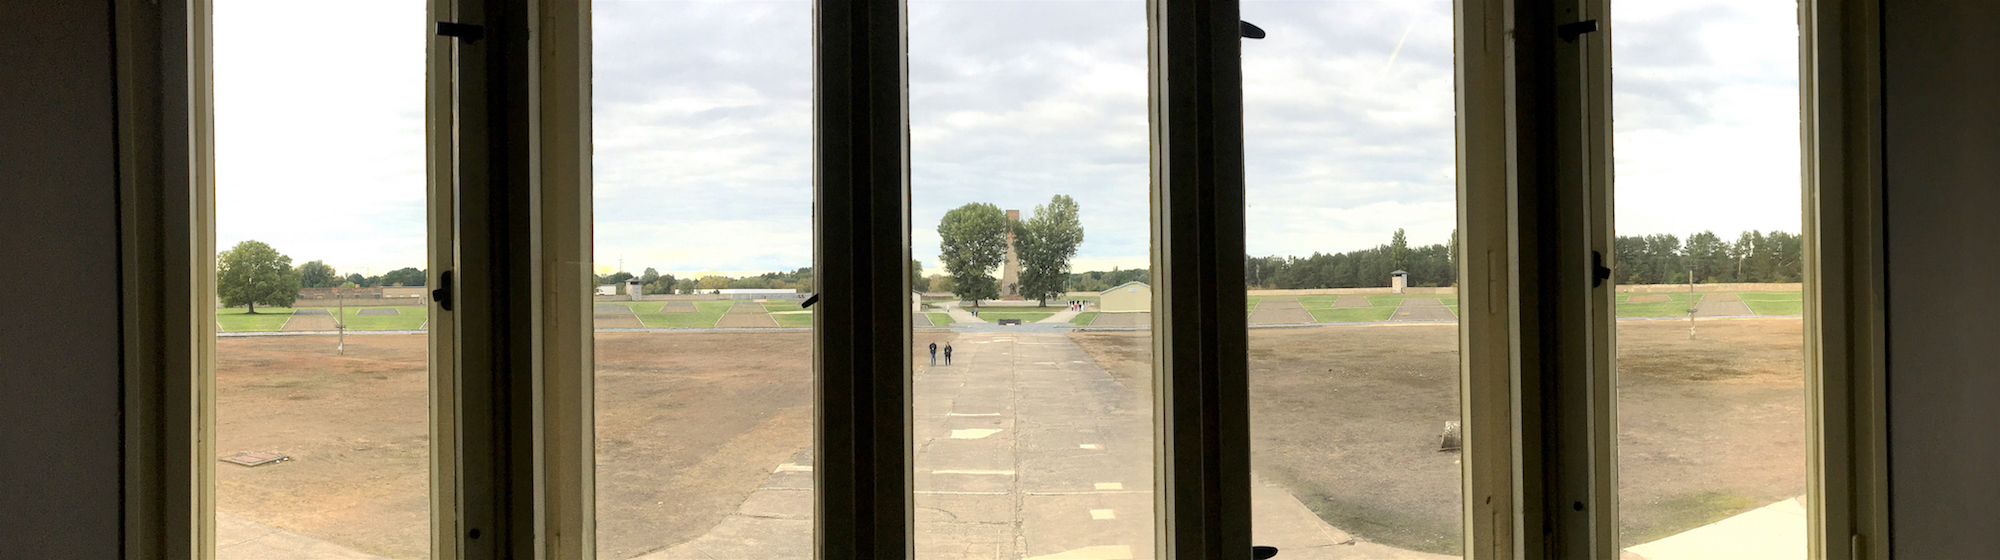 Sachsenhausen concentration camp: view from Tower A